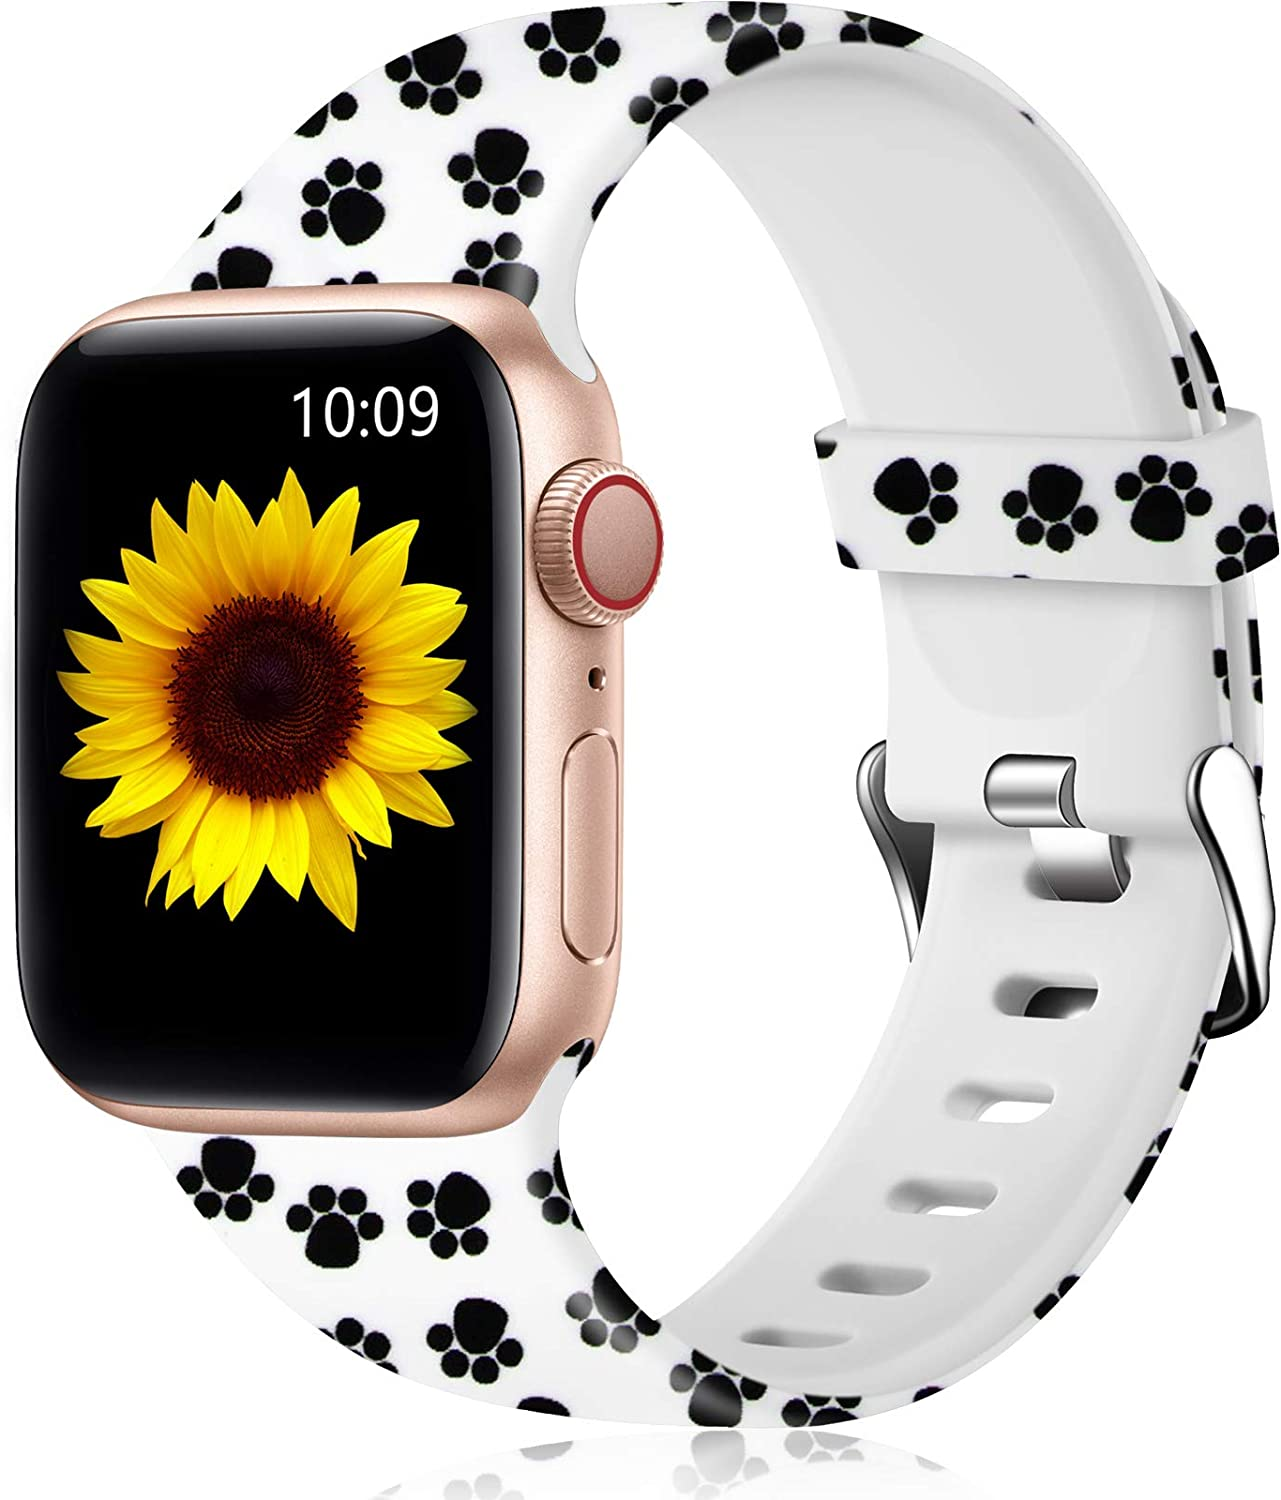 Easuny Floral Band Compatible with Apple Watch SE 40mm 38mm Women - Floral Soft Pattern Printed Cute Fadeless Silicone Replacement Wristband for iWatch Series 6 5 4 3 2 1 Girls,Cat-Paw Print,S/M